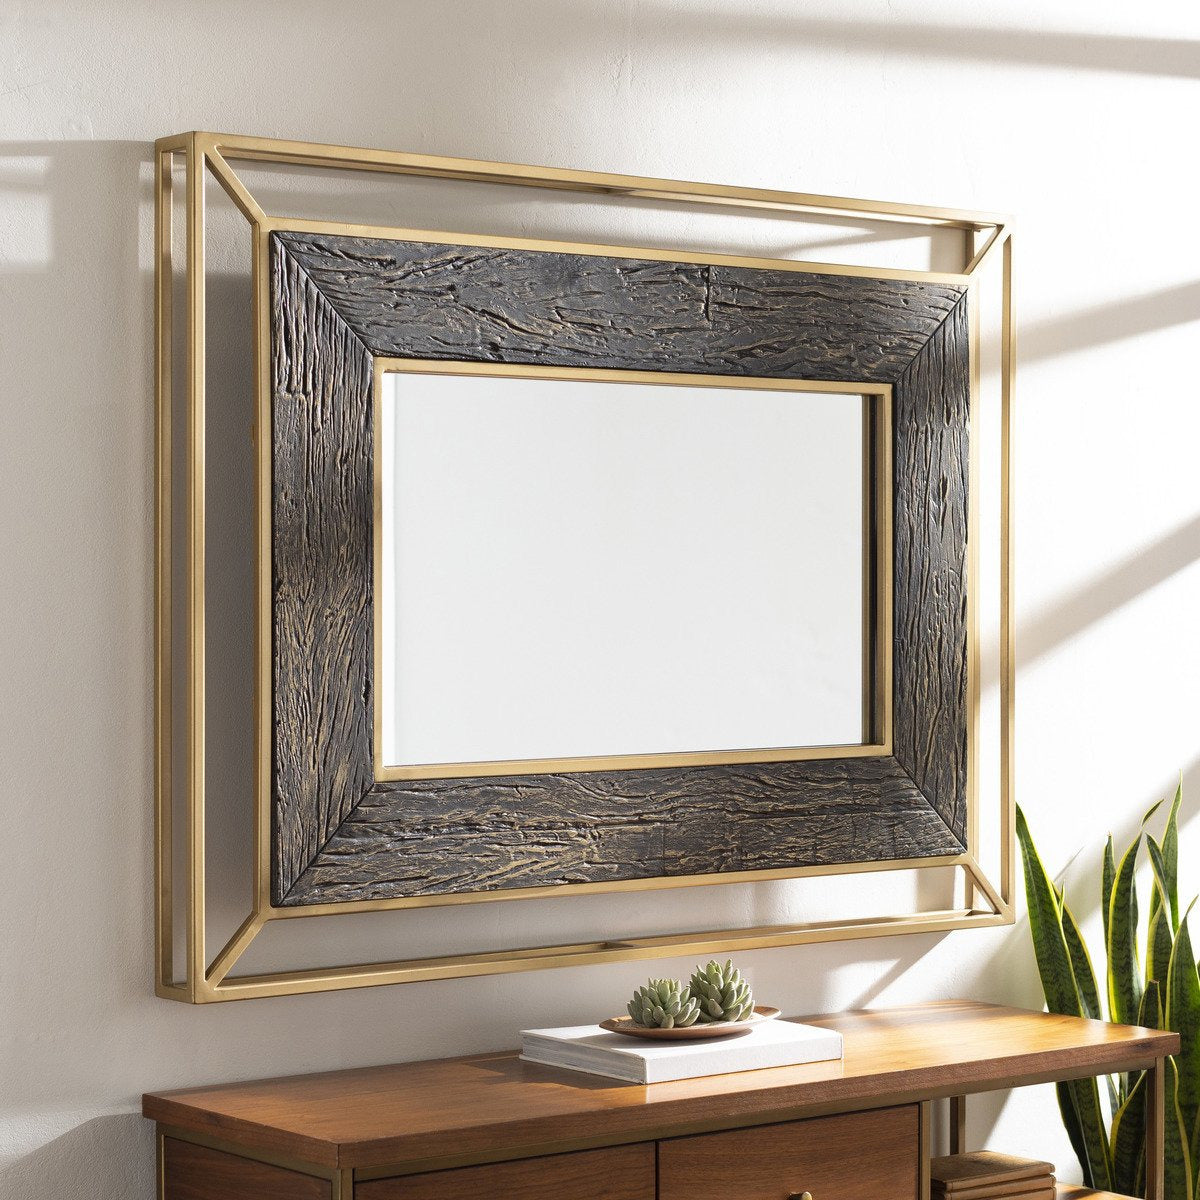 "Mirrors - Allure LLU-001 36"" X 48"" Mirror"